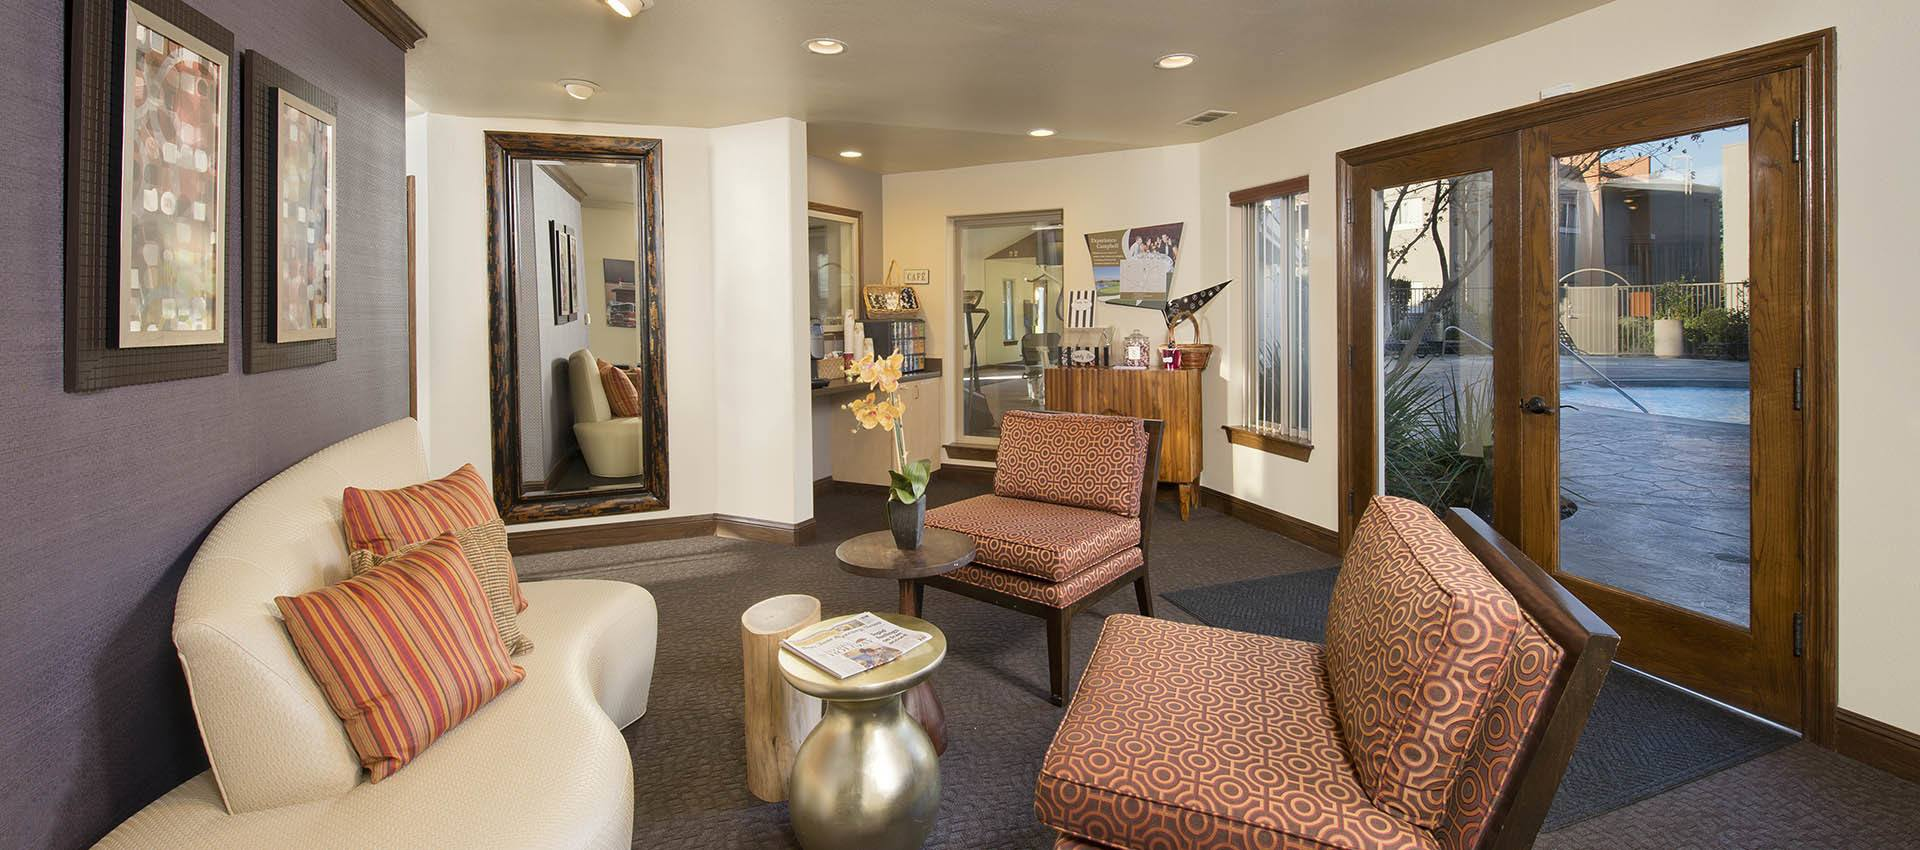 Resident Lounge at La Valencia Apartment Homes in Campbell, California